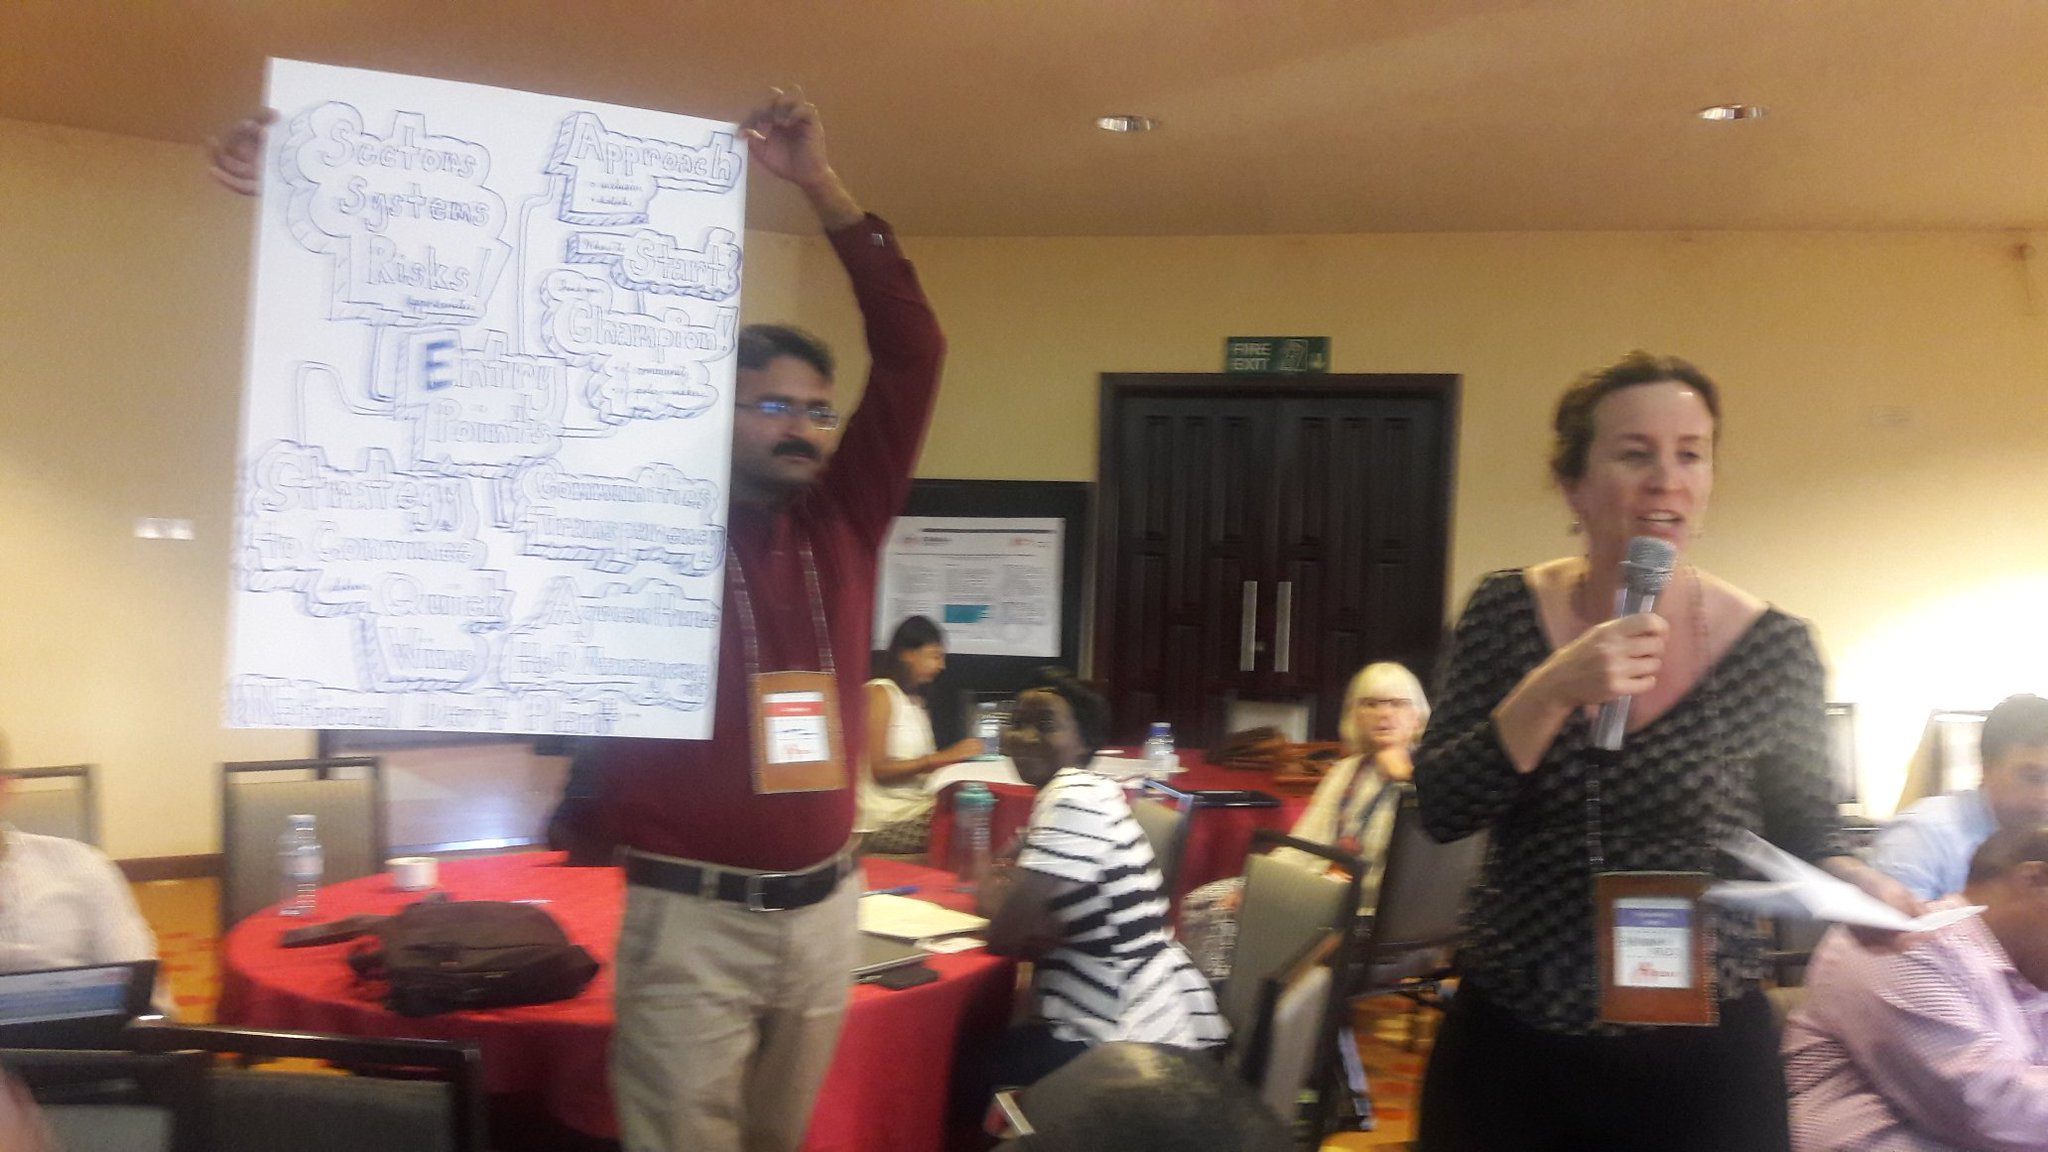 #CBA11 Using art @Irish_Aid session to explain entry points for mainstreaming climate change into planning processes @IIED  @NAP_Central https://t.co/GzLkS4RxEx